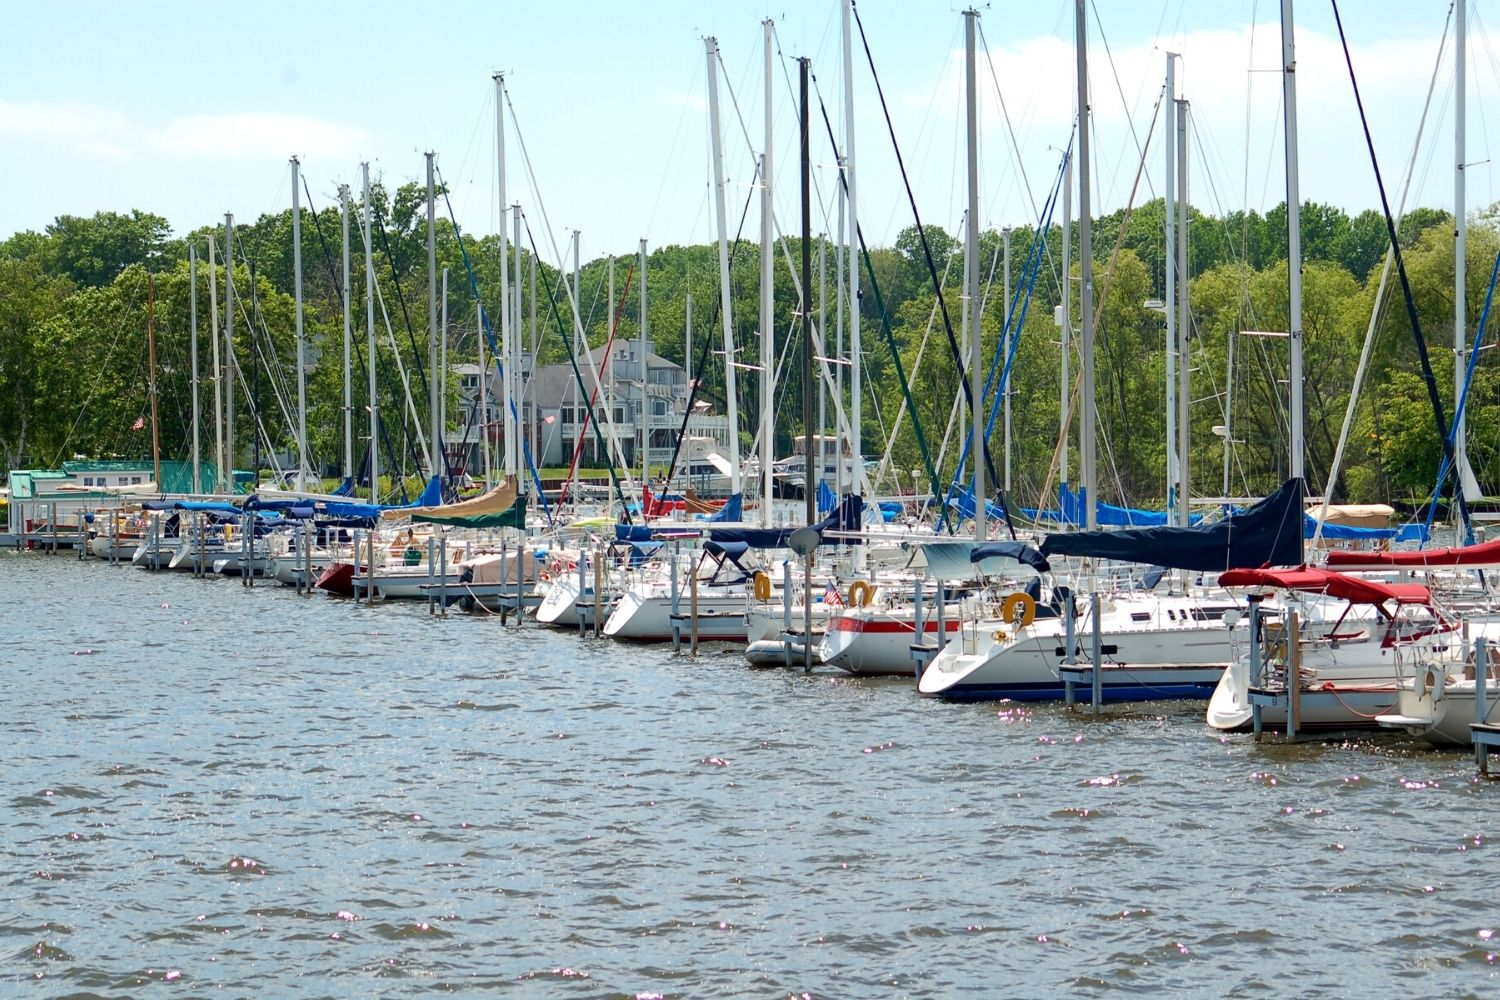 things to do in saugatuck